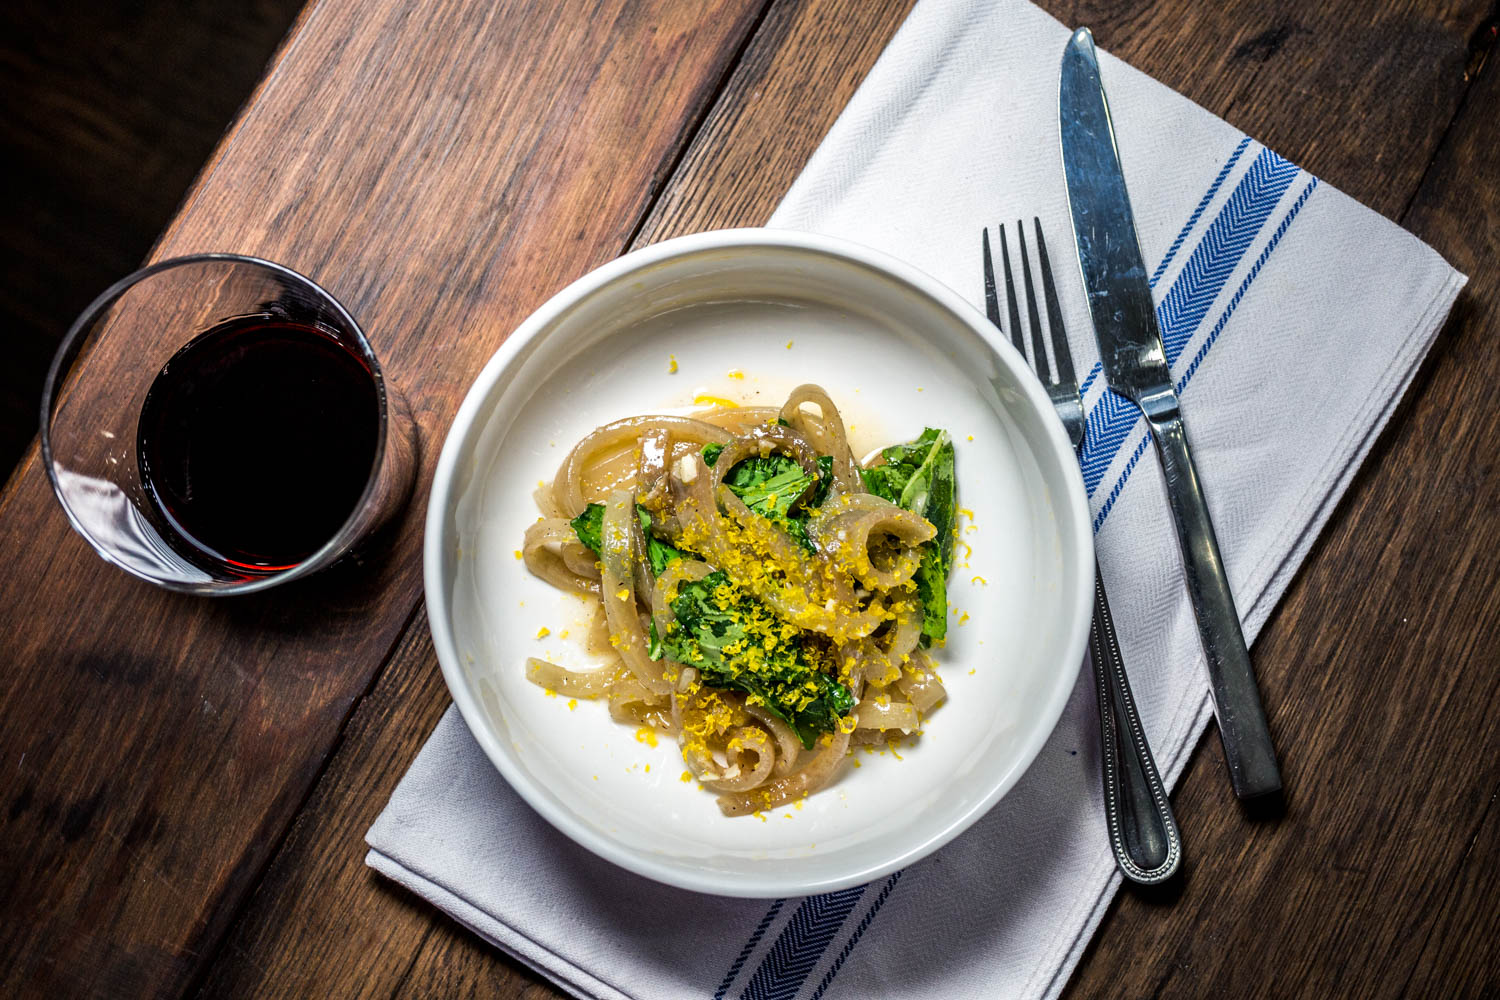 Pig Skin Carbonara: hand-sliced pig skin noodles tossed lightly in white wine and butter with arugula and topped with grated cured egg yolk / Image: Catherine Viox // Published: 10.16.19